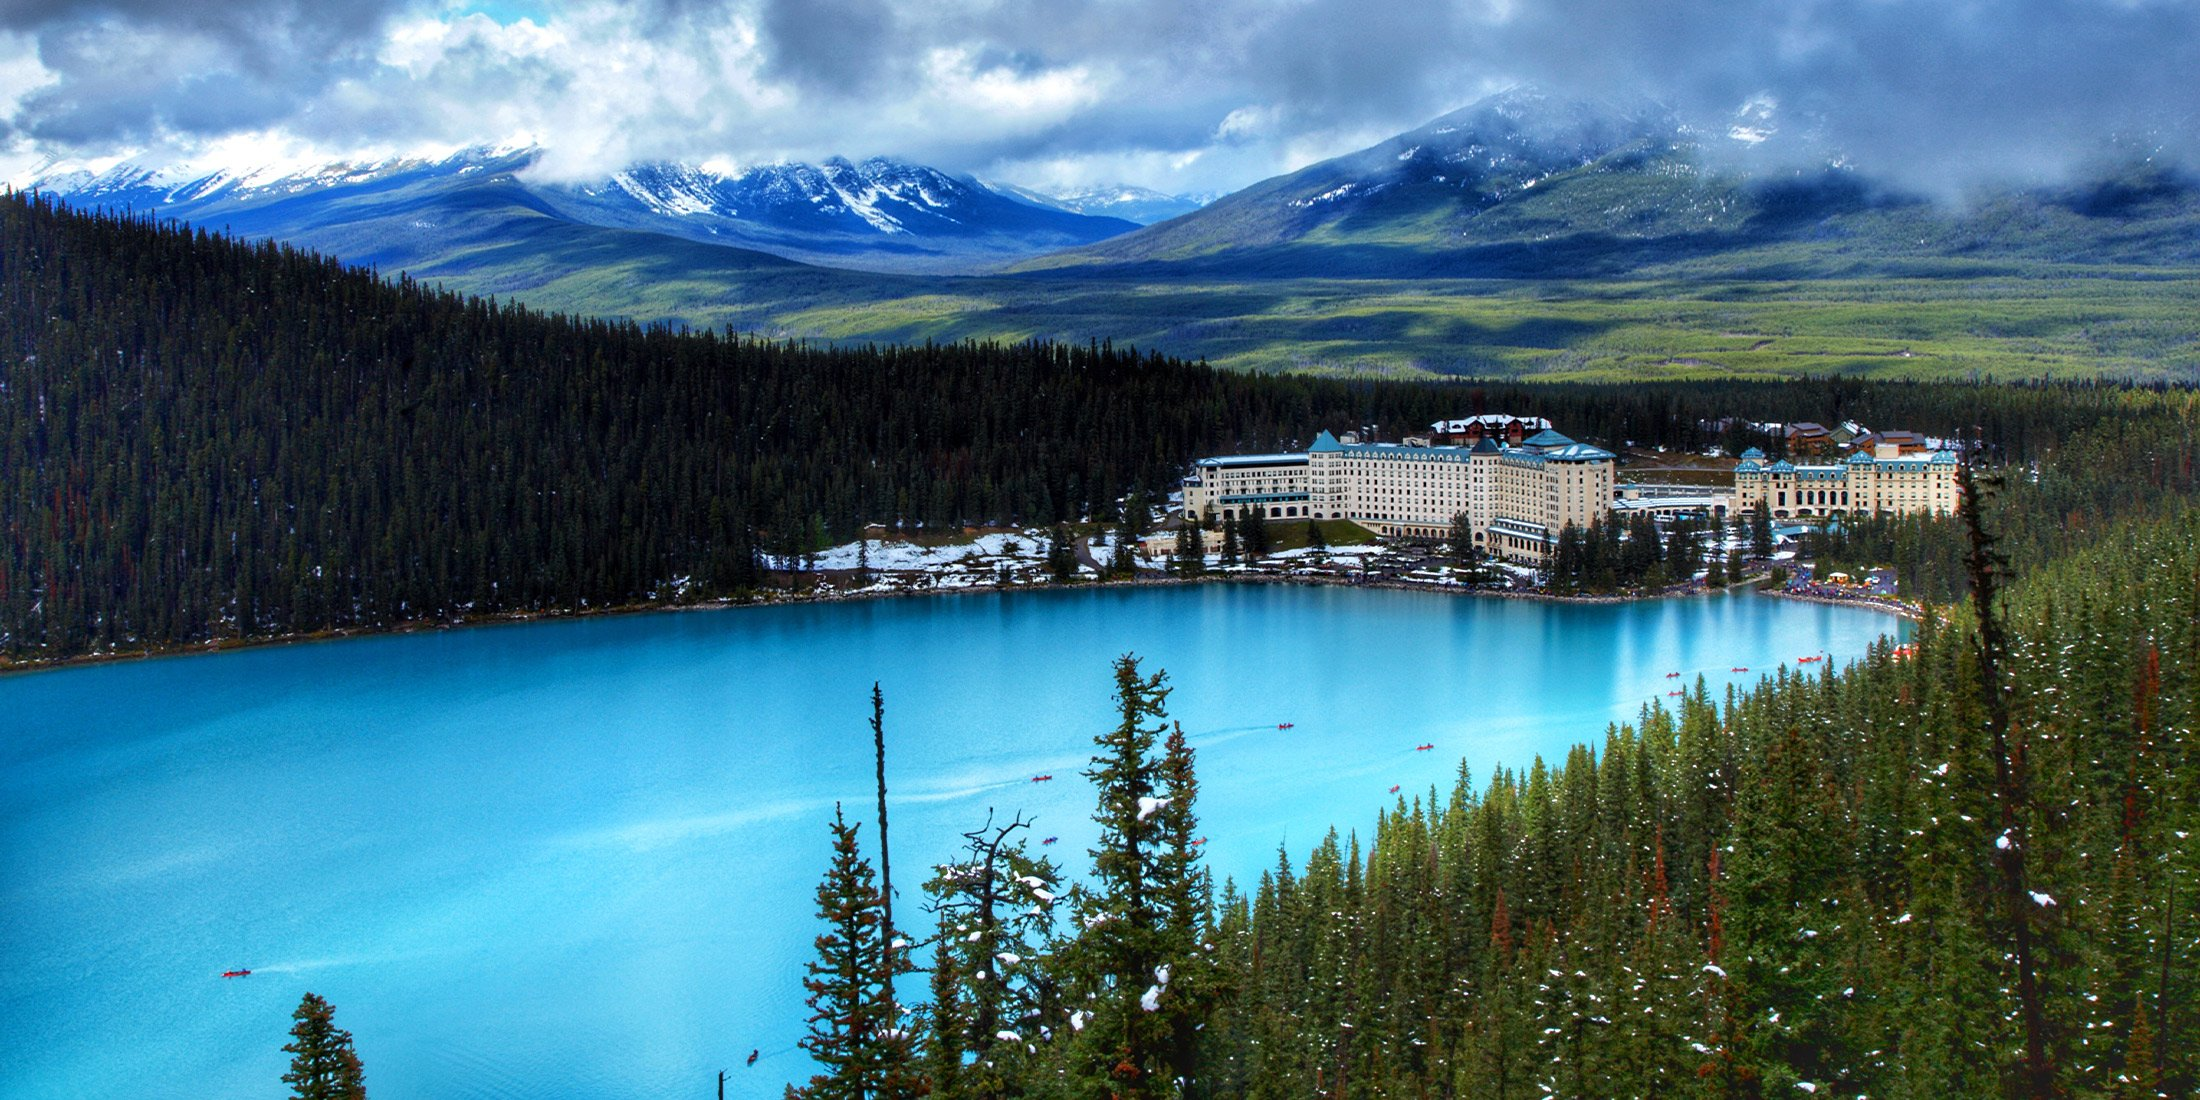 Epic Tour from Banff to Vancouver with Scenic